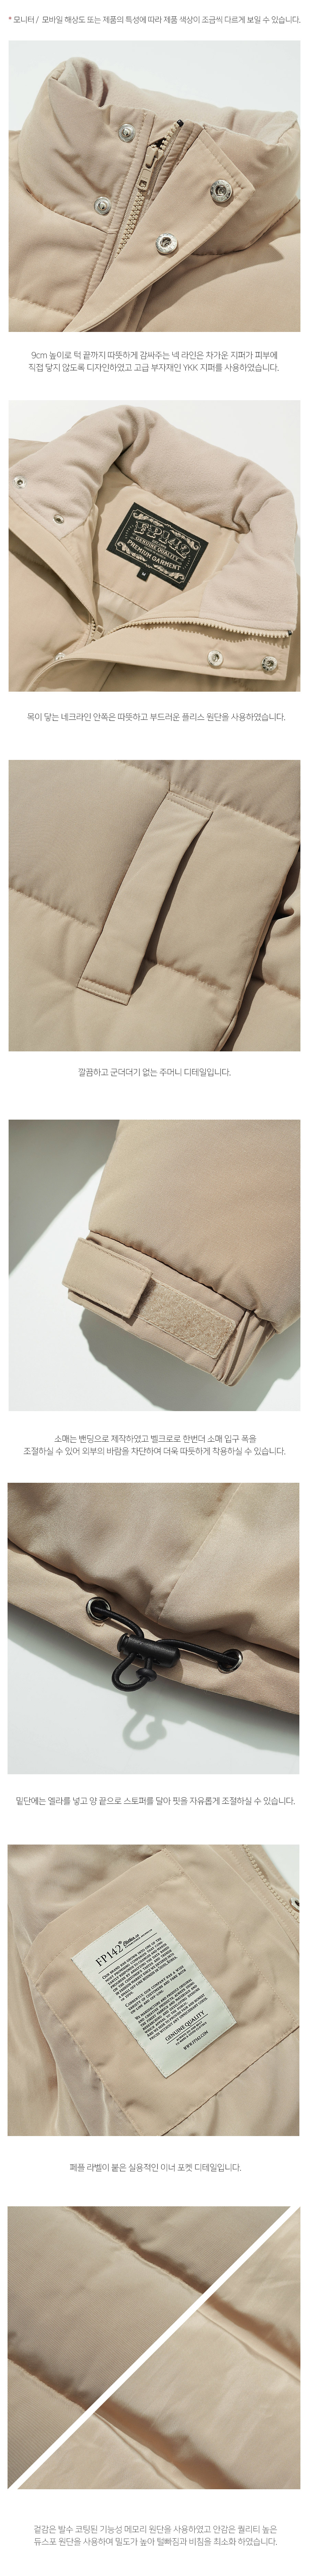 5_KHOT1278_detail_color_beige2_sj.jpg